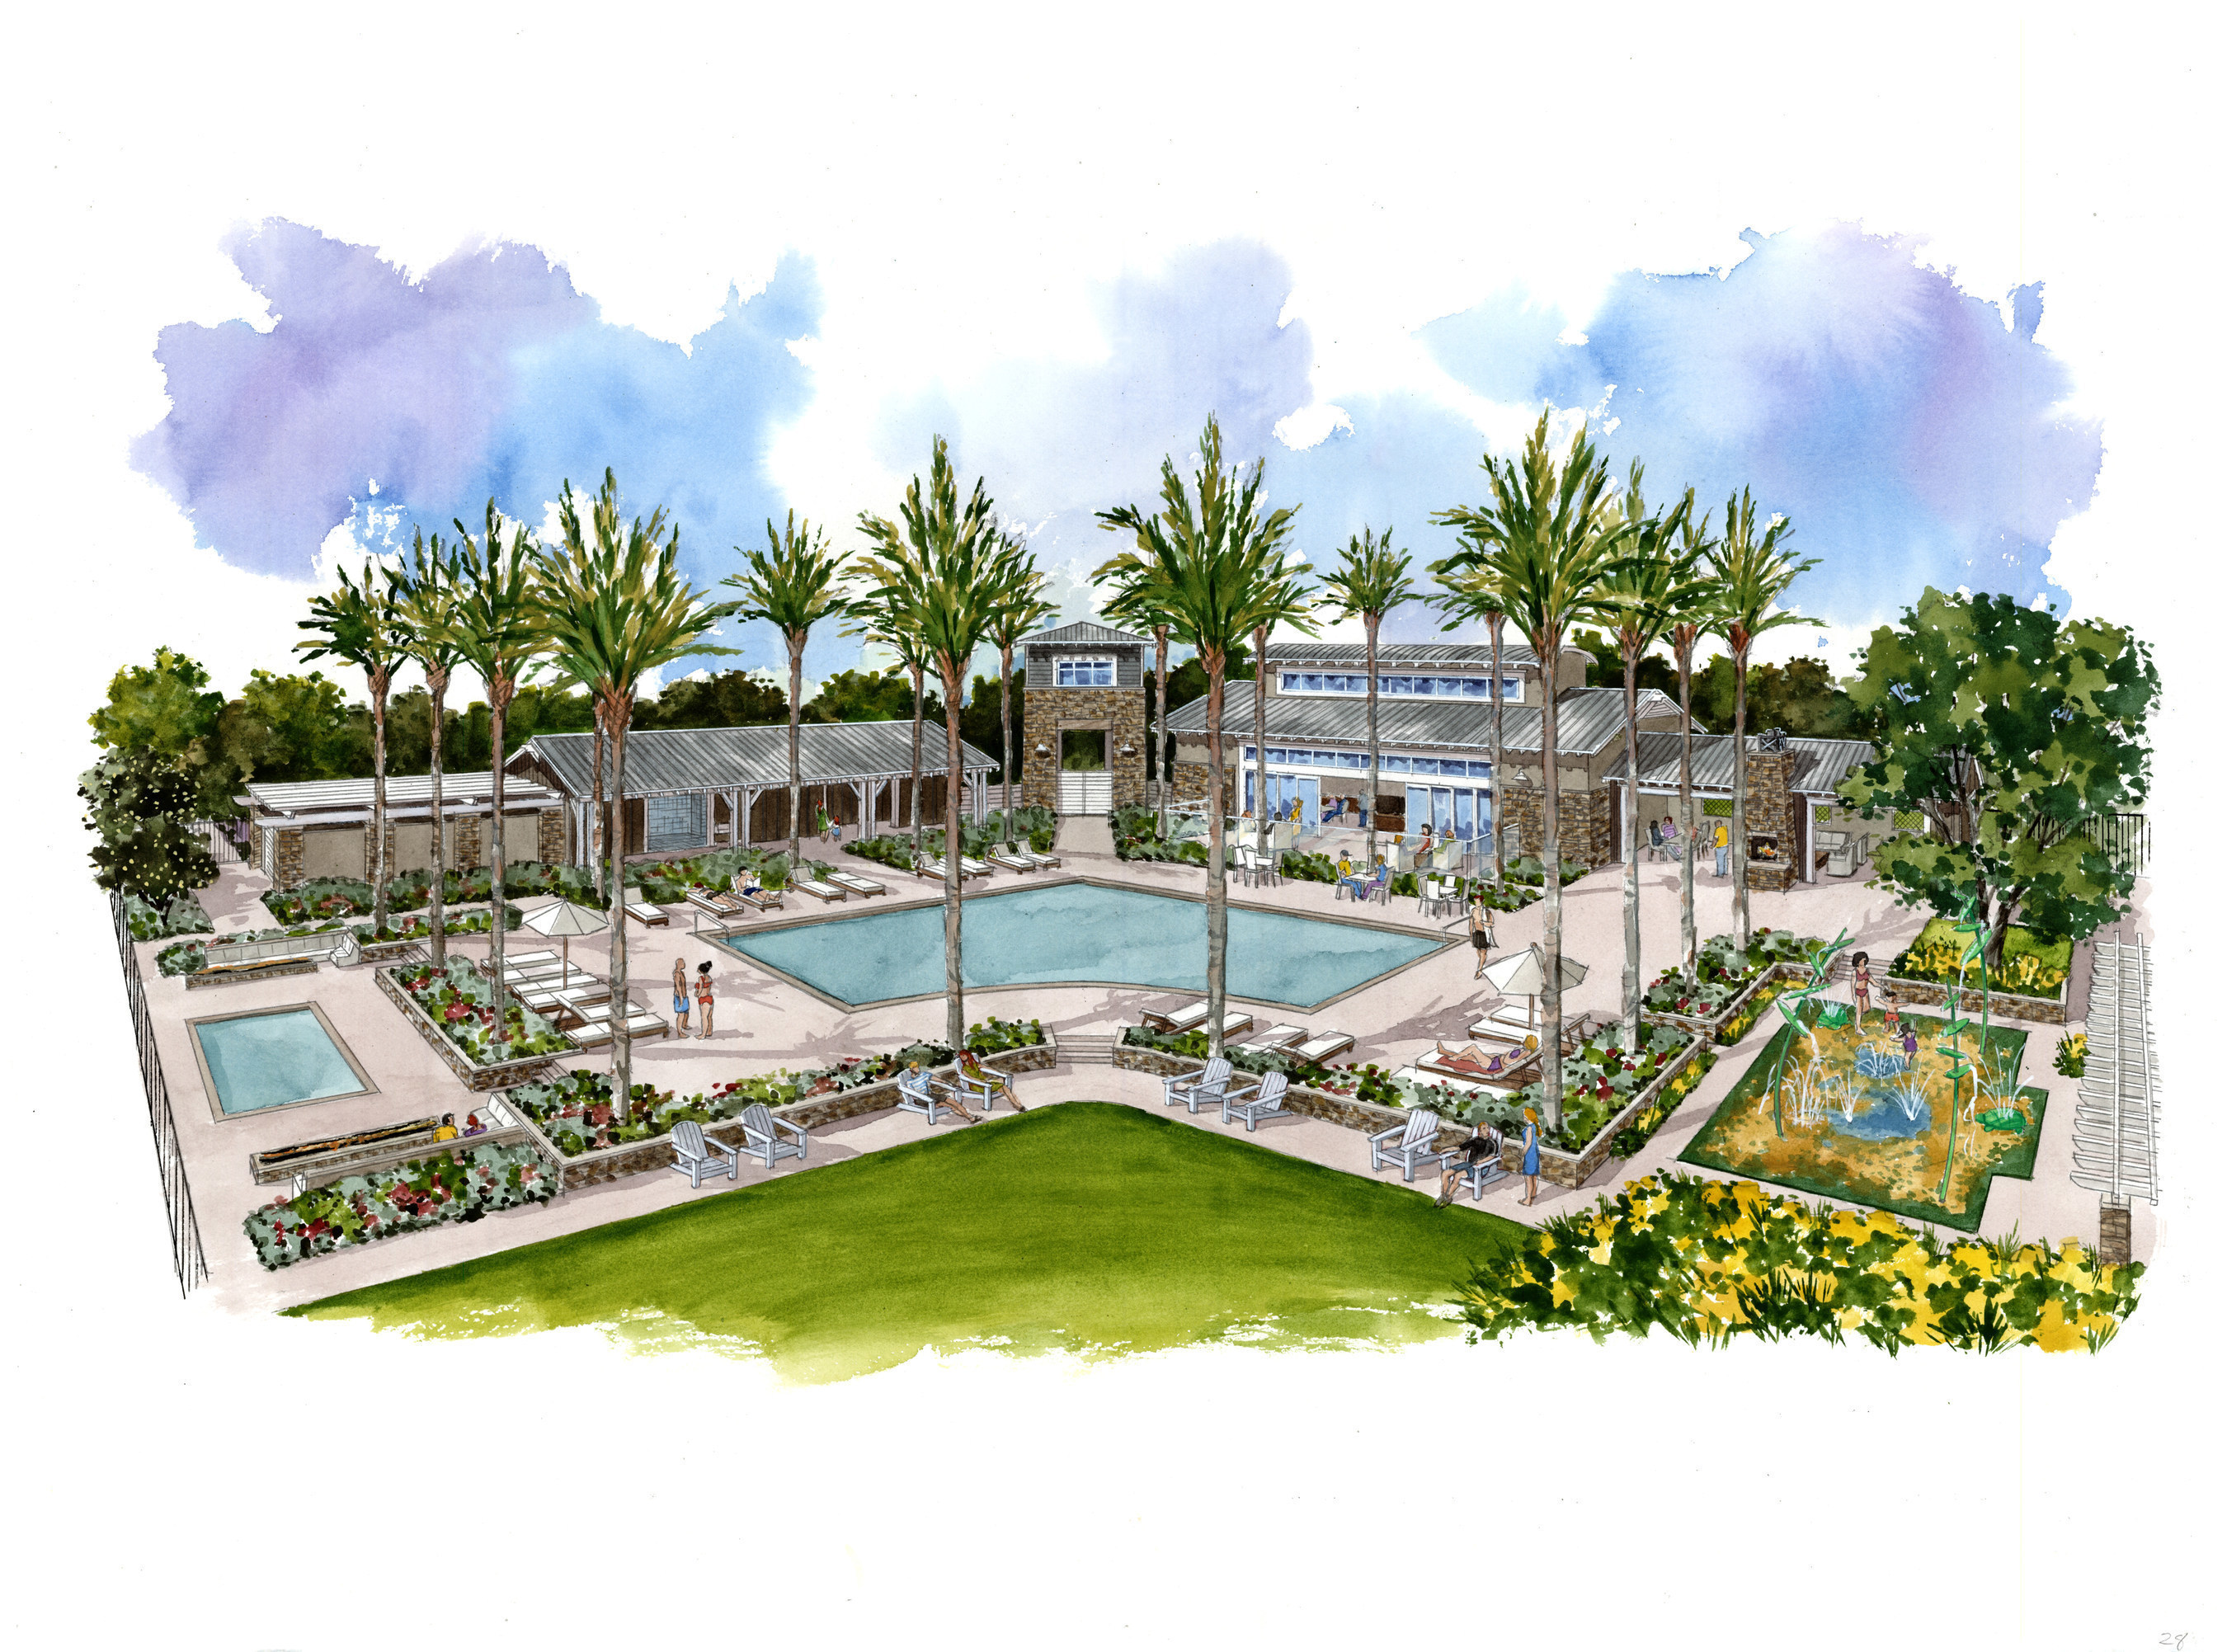 Standard Pacific Homes Announces May 30th Grand Opening Of Greenwood In Tustin Legacy